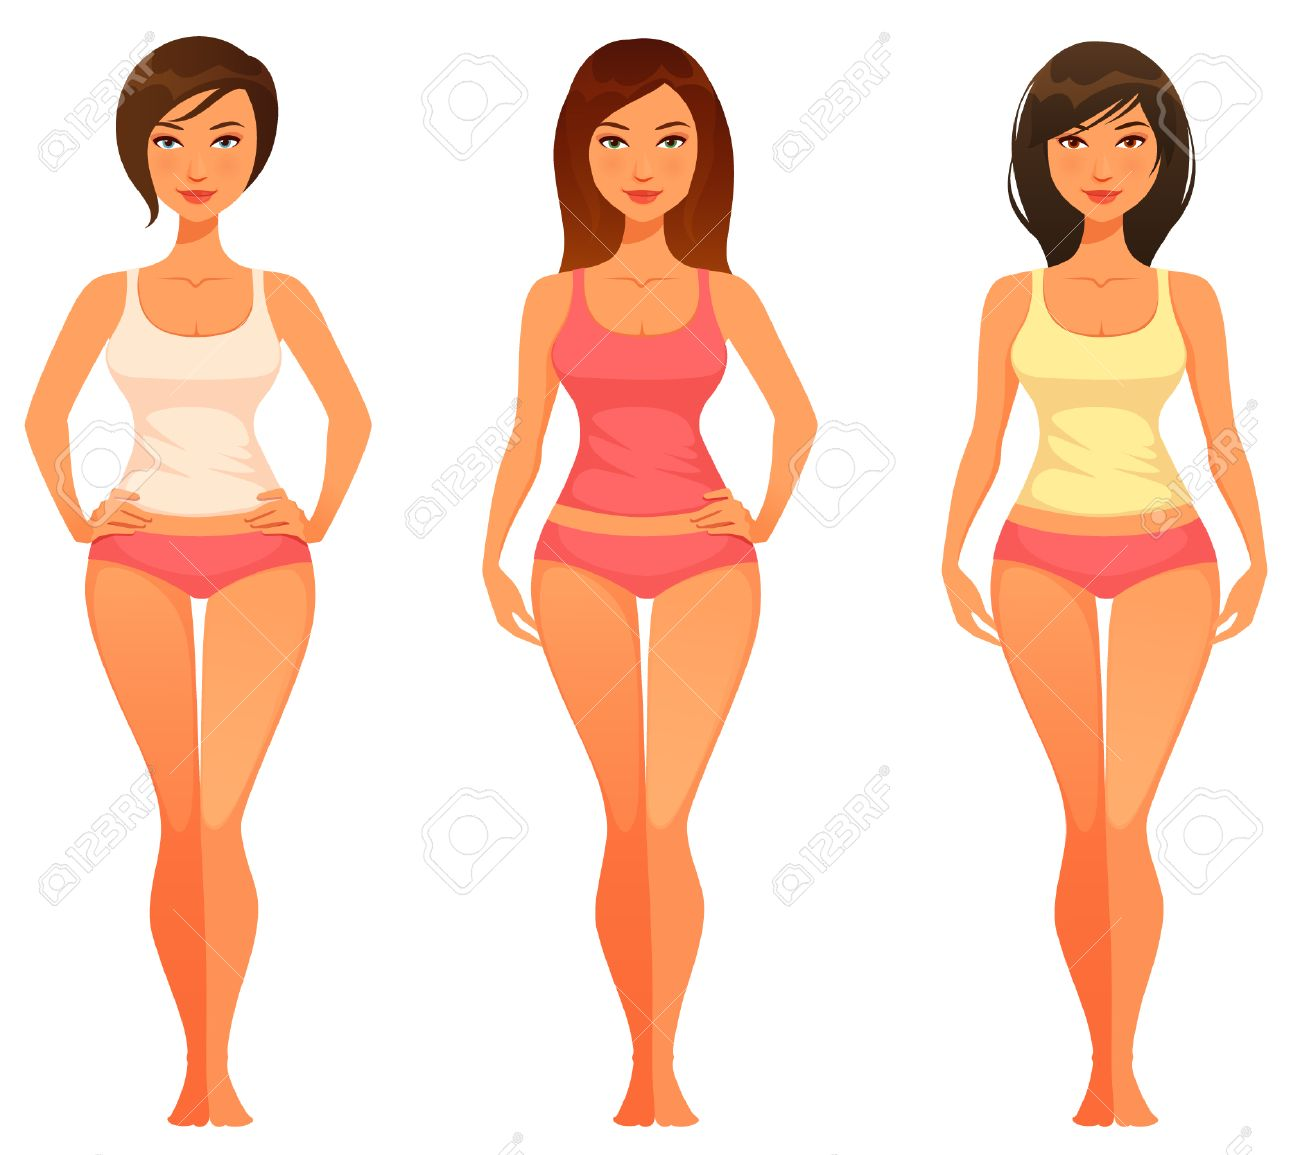 cartoon illustration of a young woman with healthy slim body - 40656811